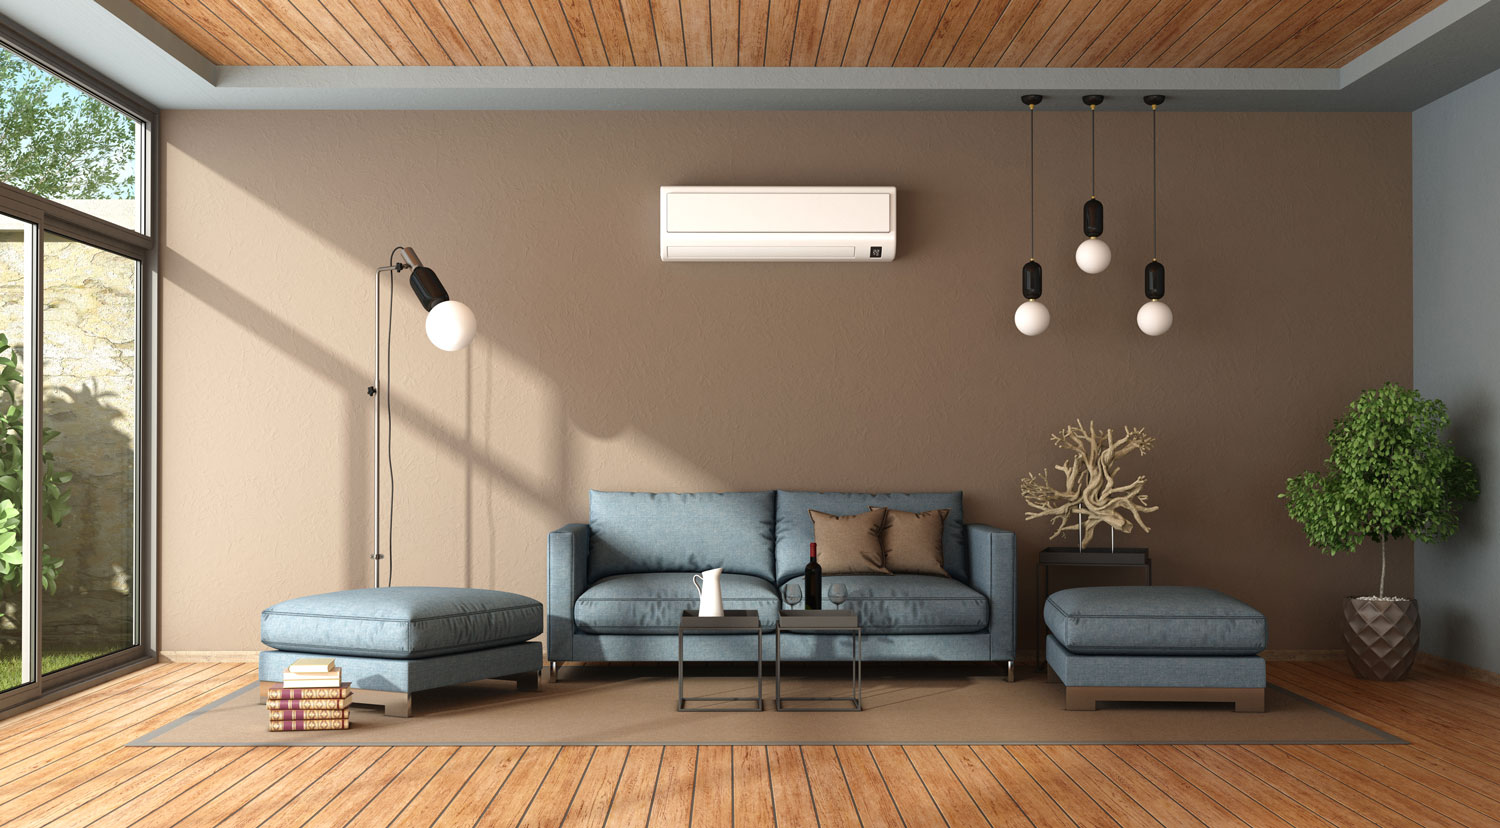 Residential Air Conditioning Services And Repairs in Melbourne and Geelong